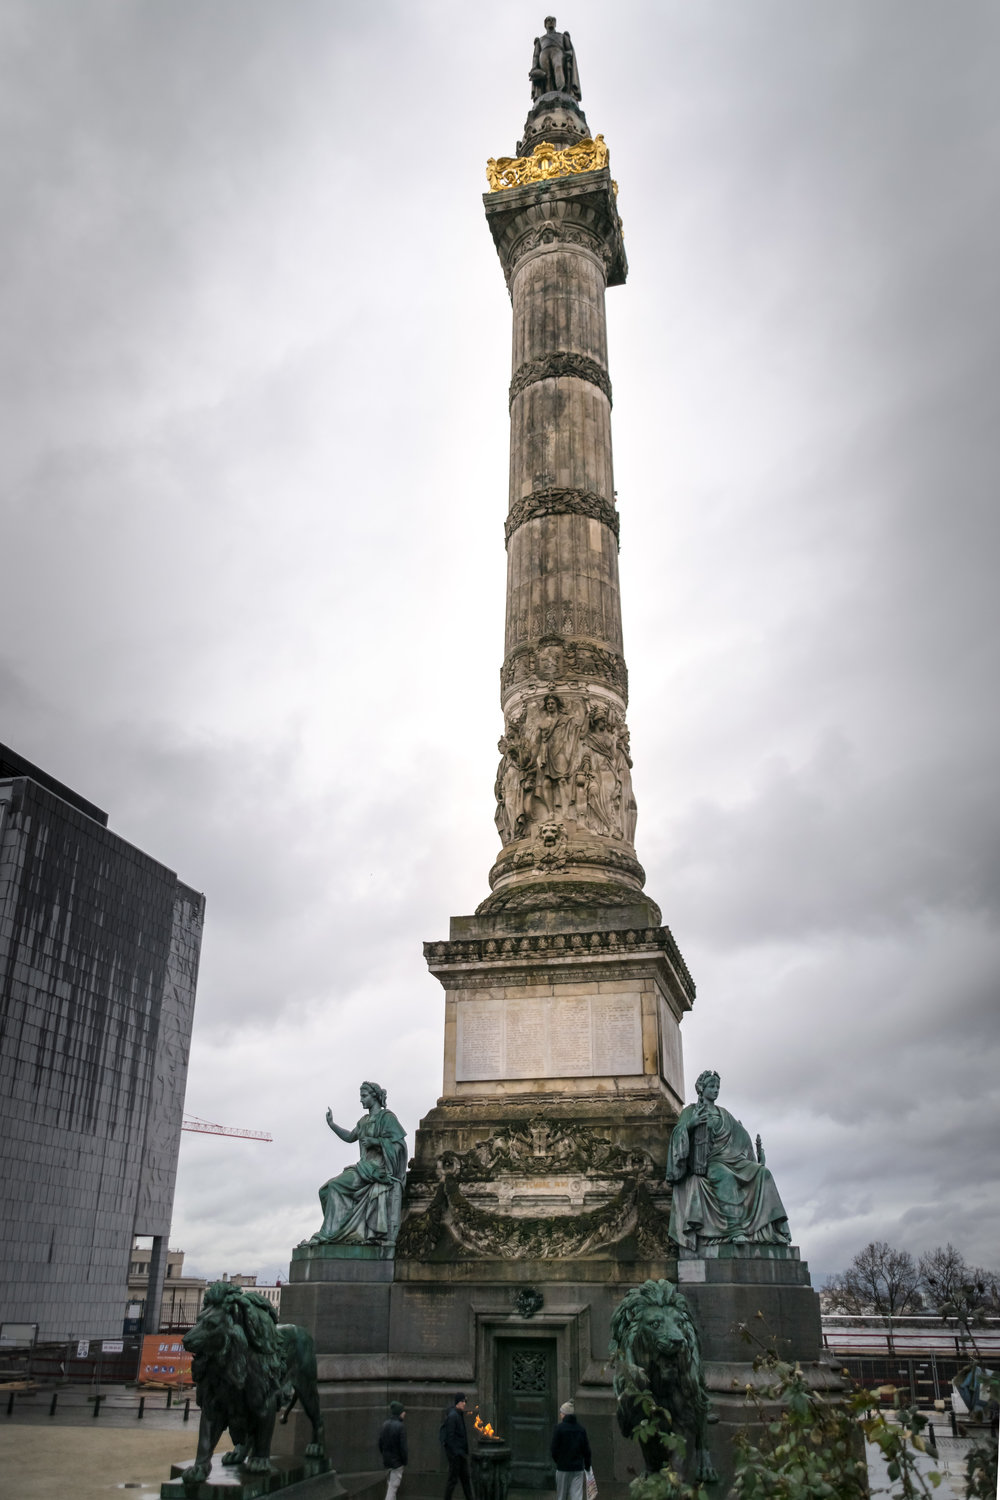 the 1850 Congress Column, celebrating Belgium's Constitution